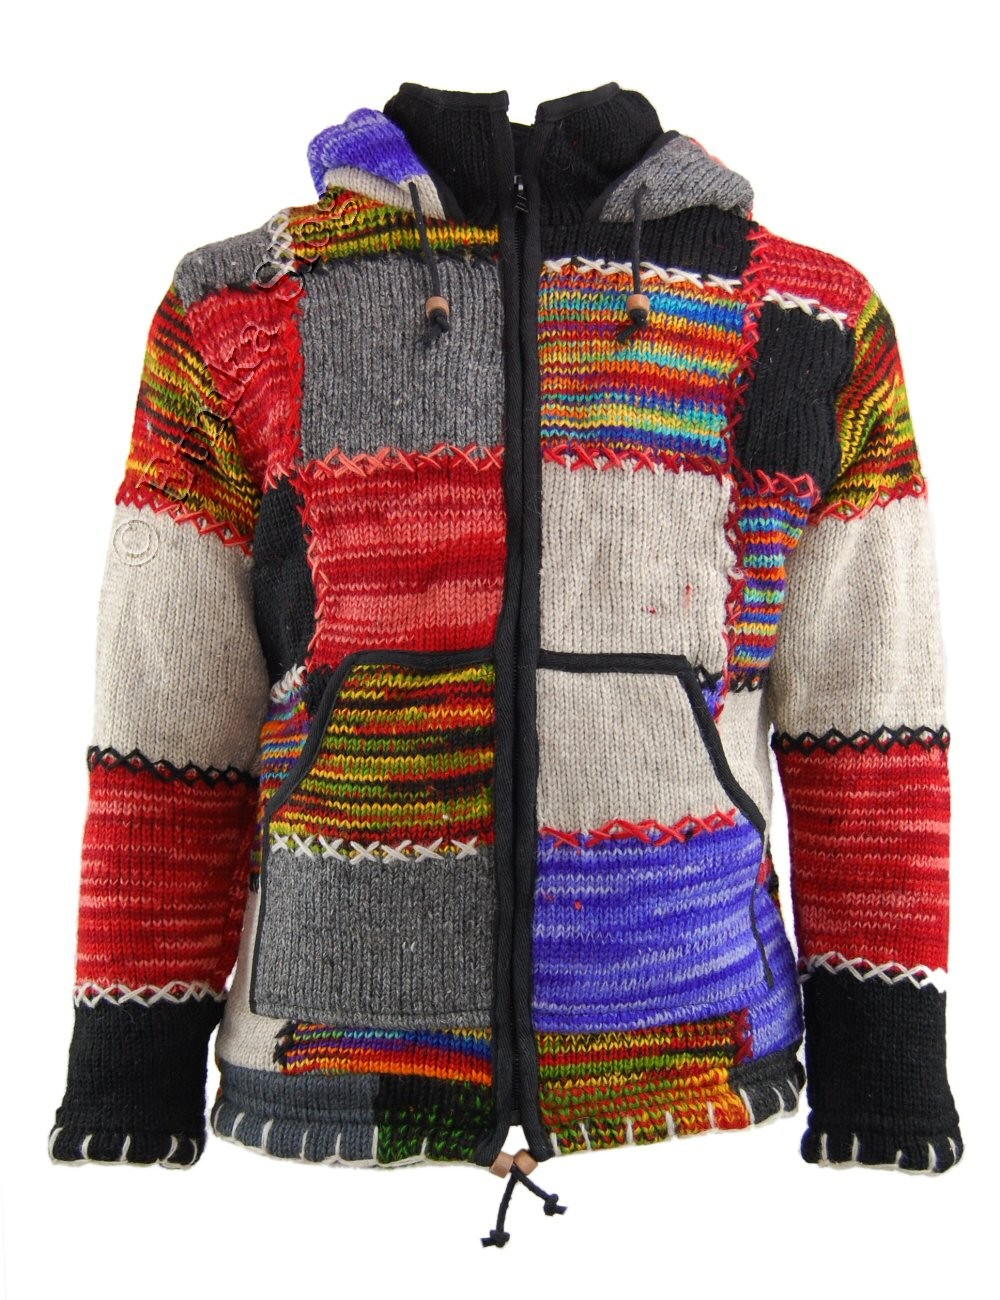 WOOLEN JACKETS, PONCHOS AND SWEATERS AB-GL32 - Oriente Import S.r.l.